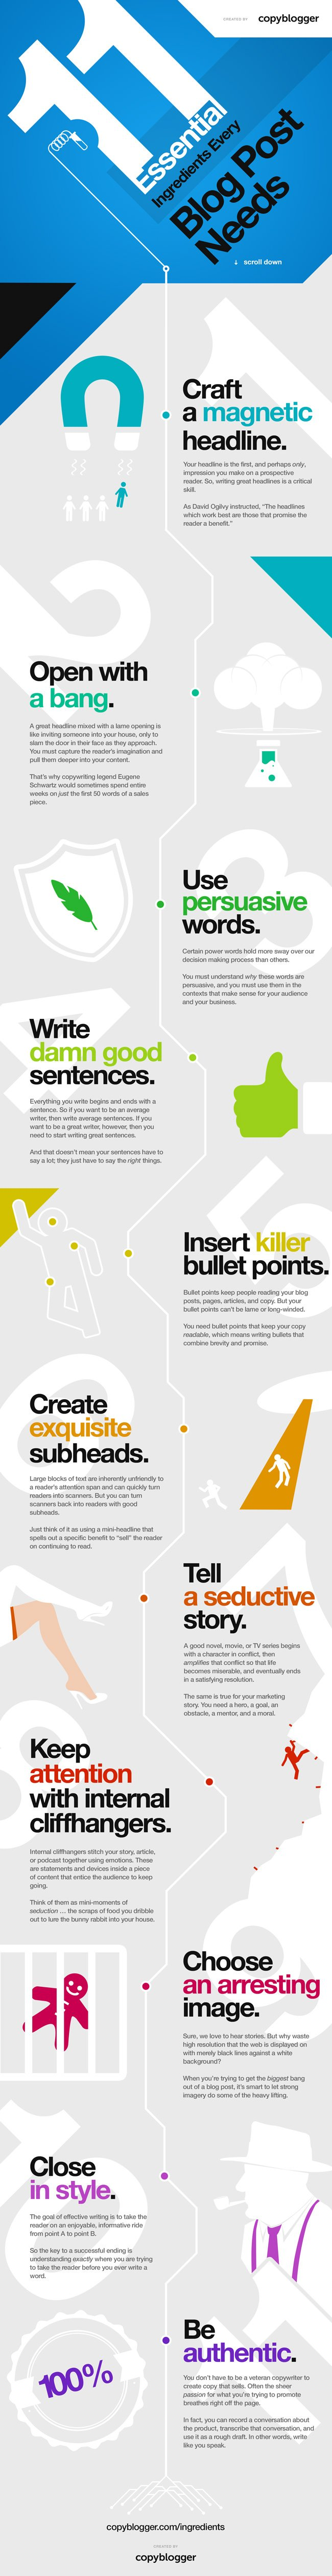 Infographic: Essential Blog Post Ingredients from copyblogger.com